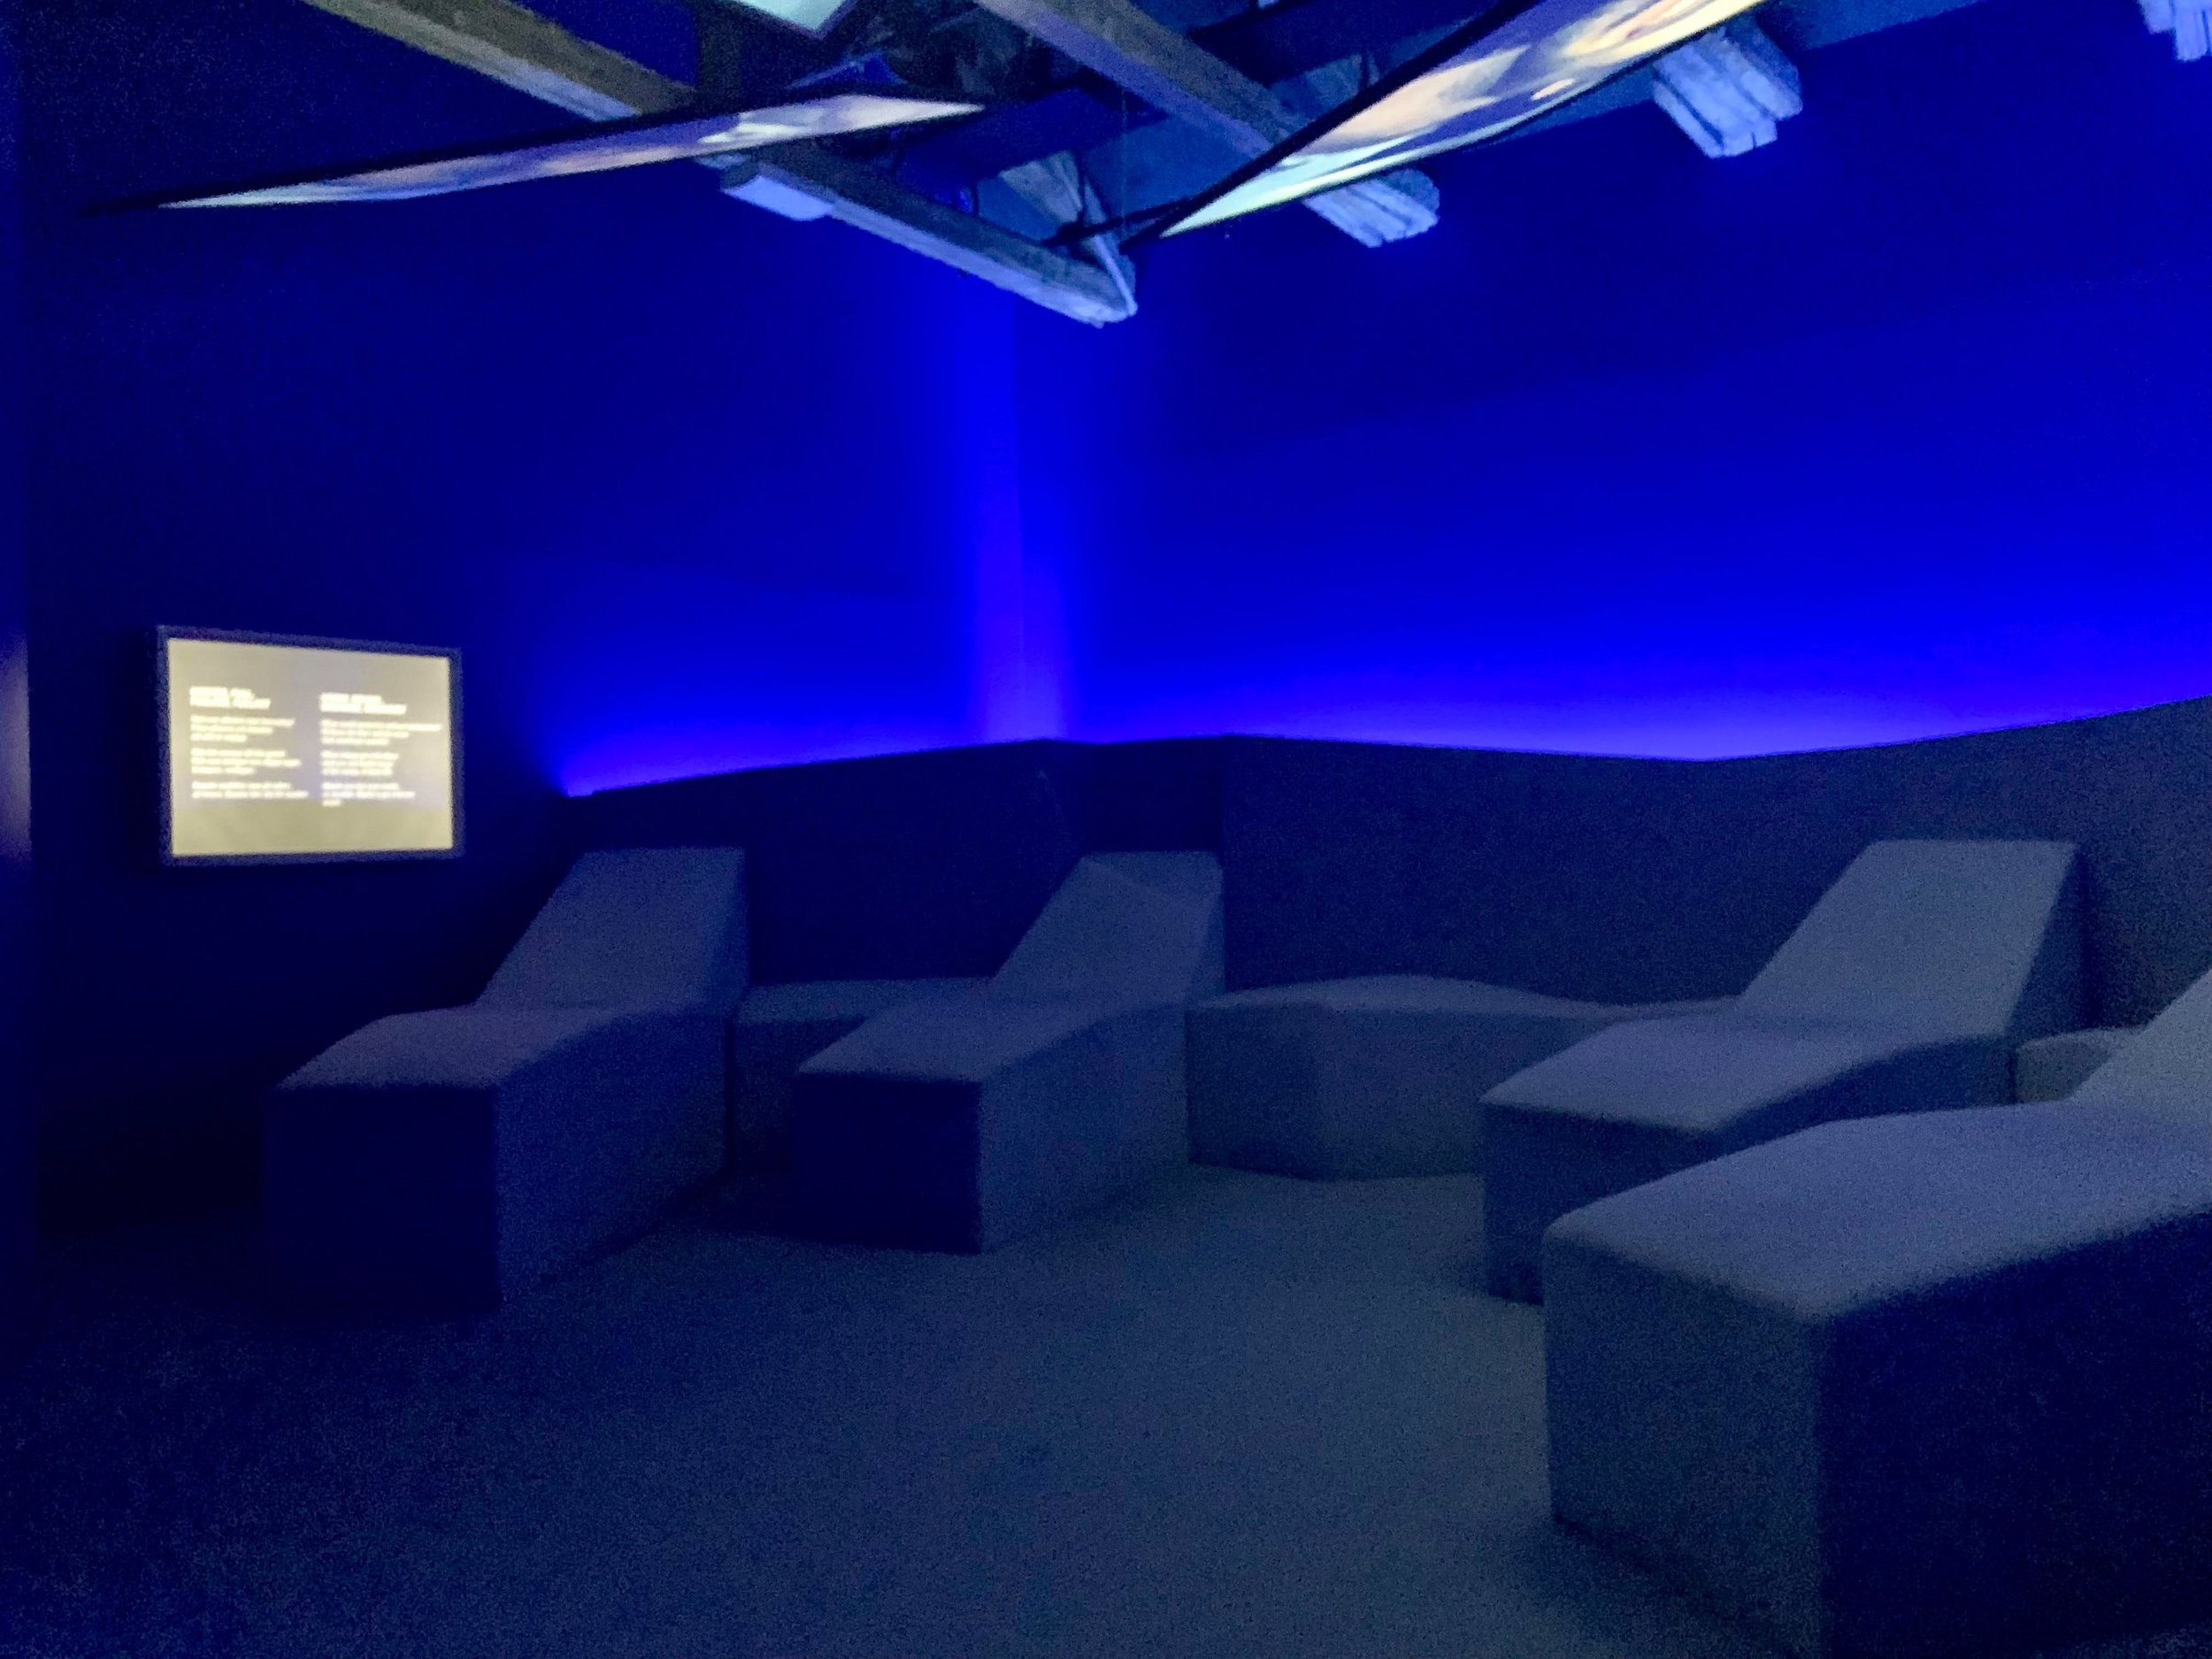 - 'Hangover experience room'